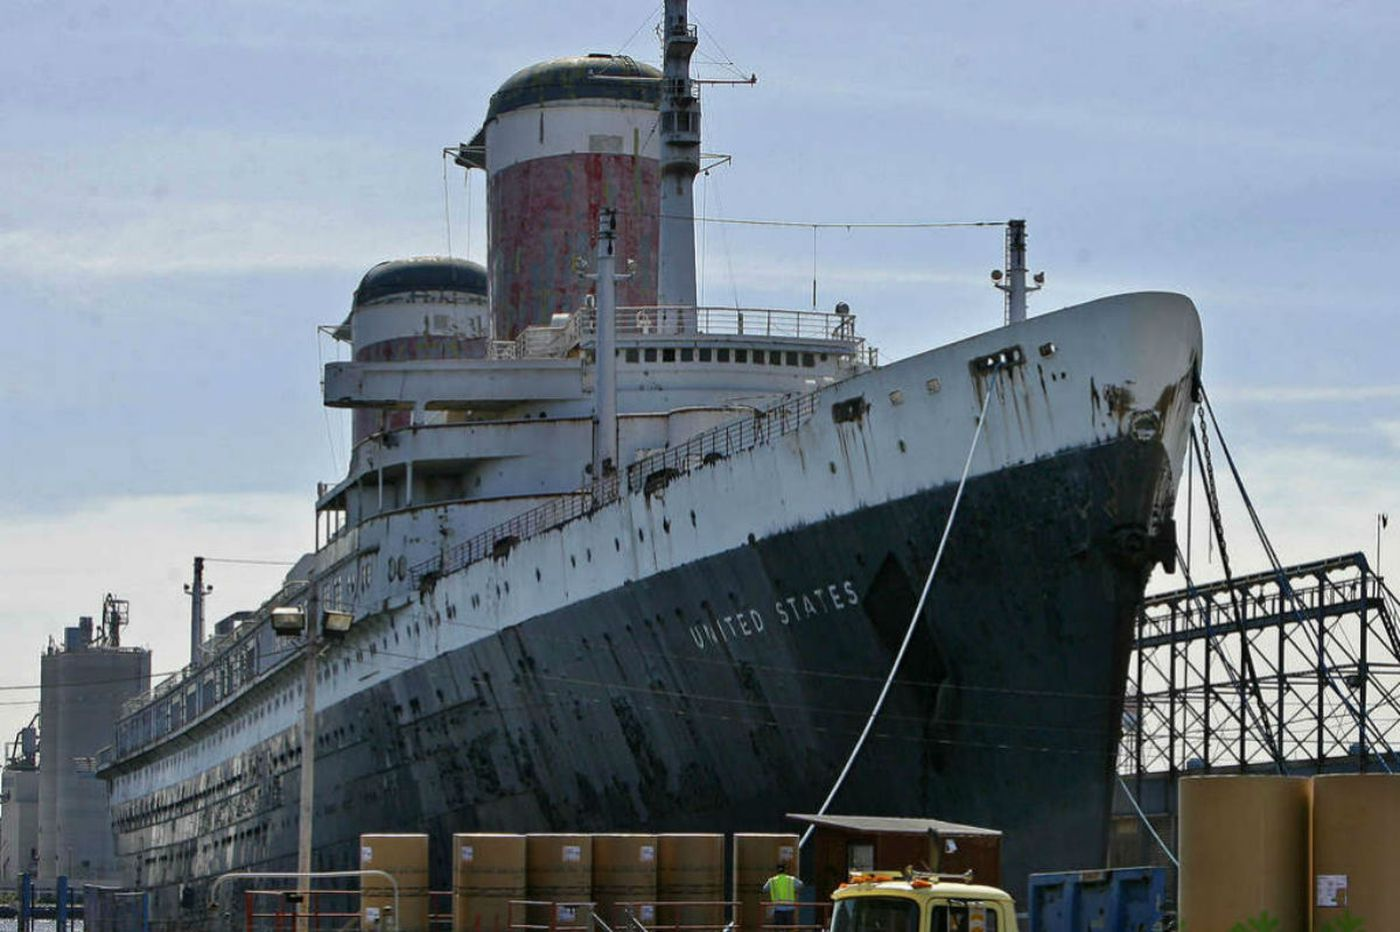 SS United States group raises enough to stay afloat